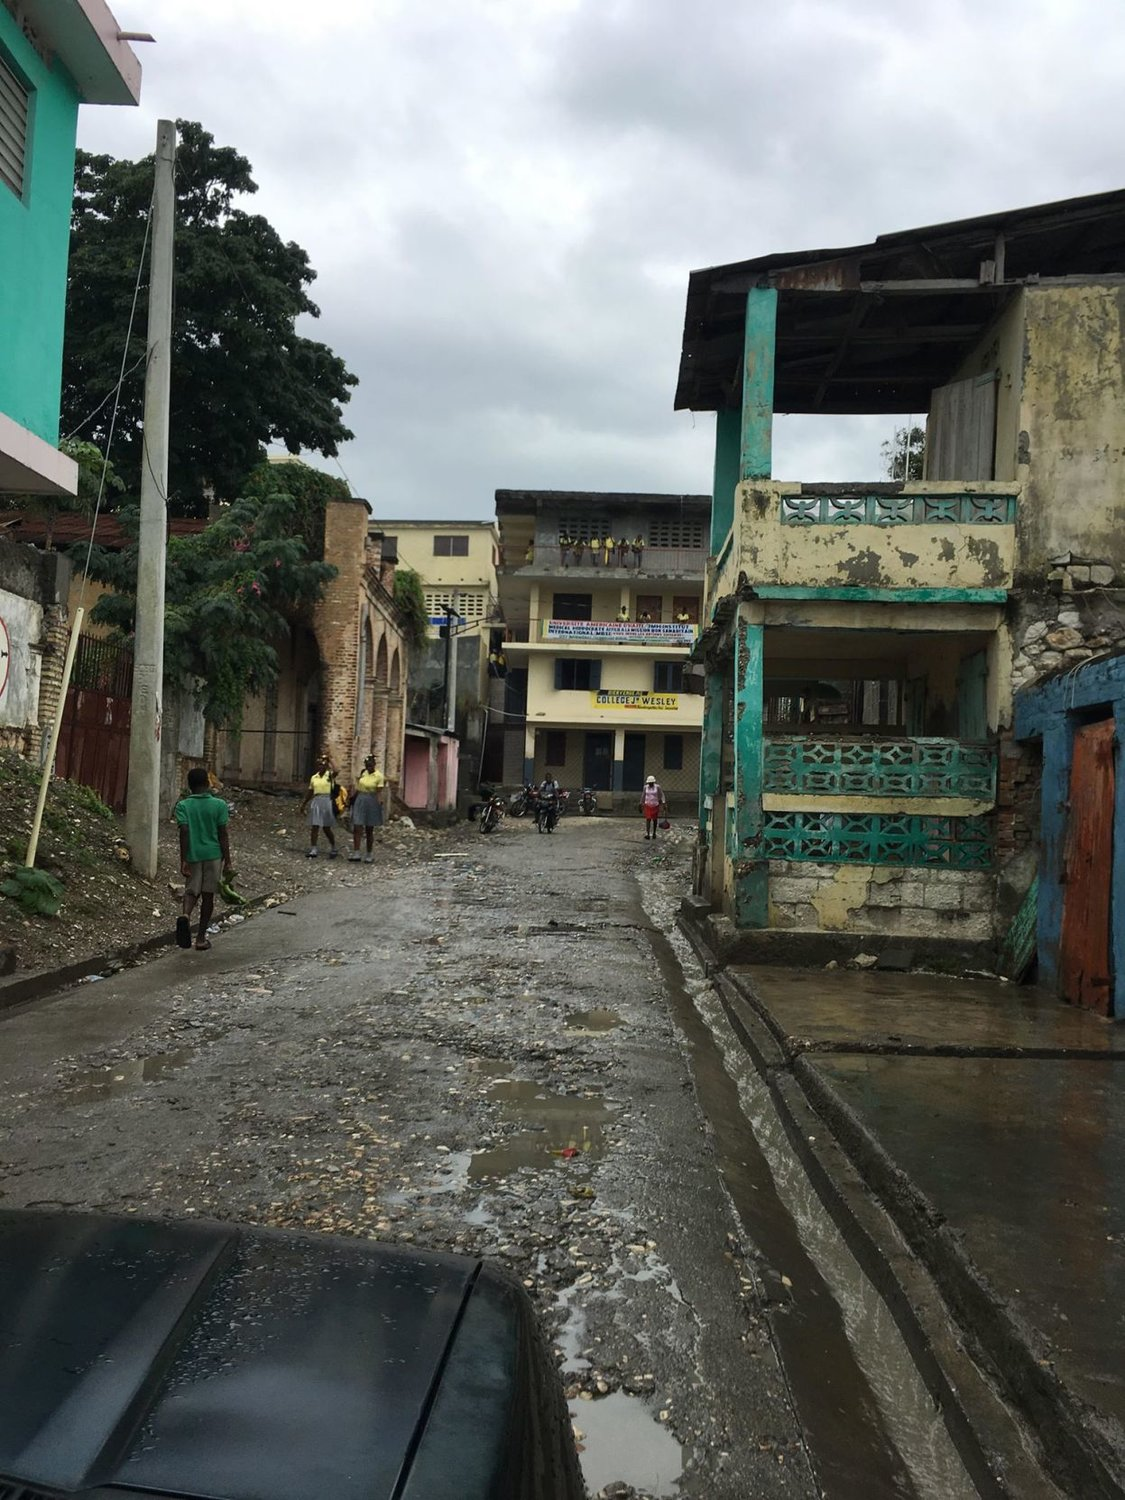 A street view of Jeremie.